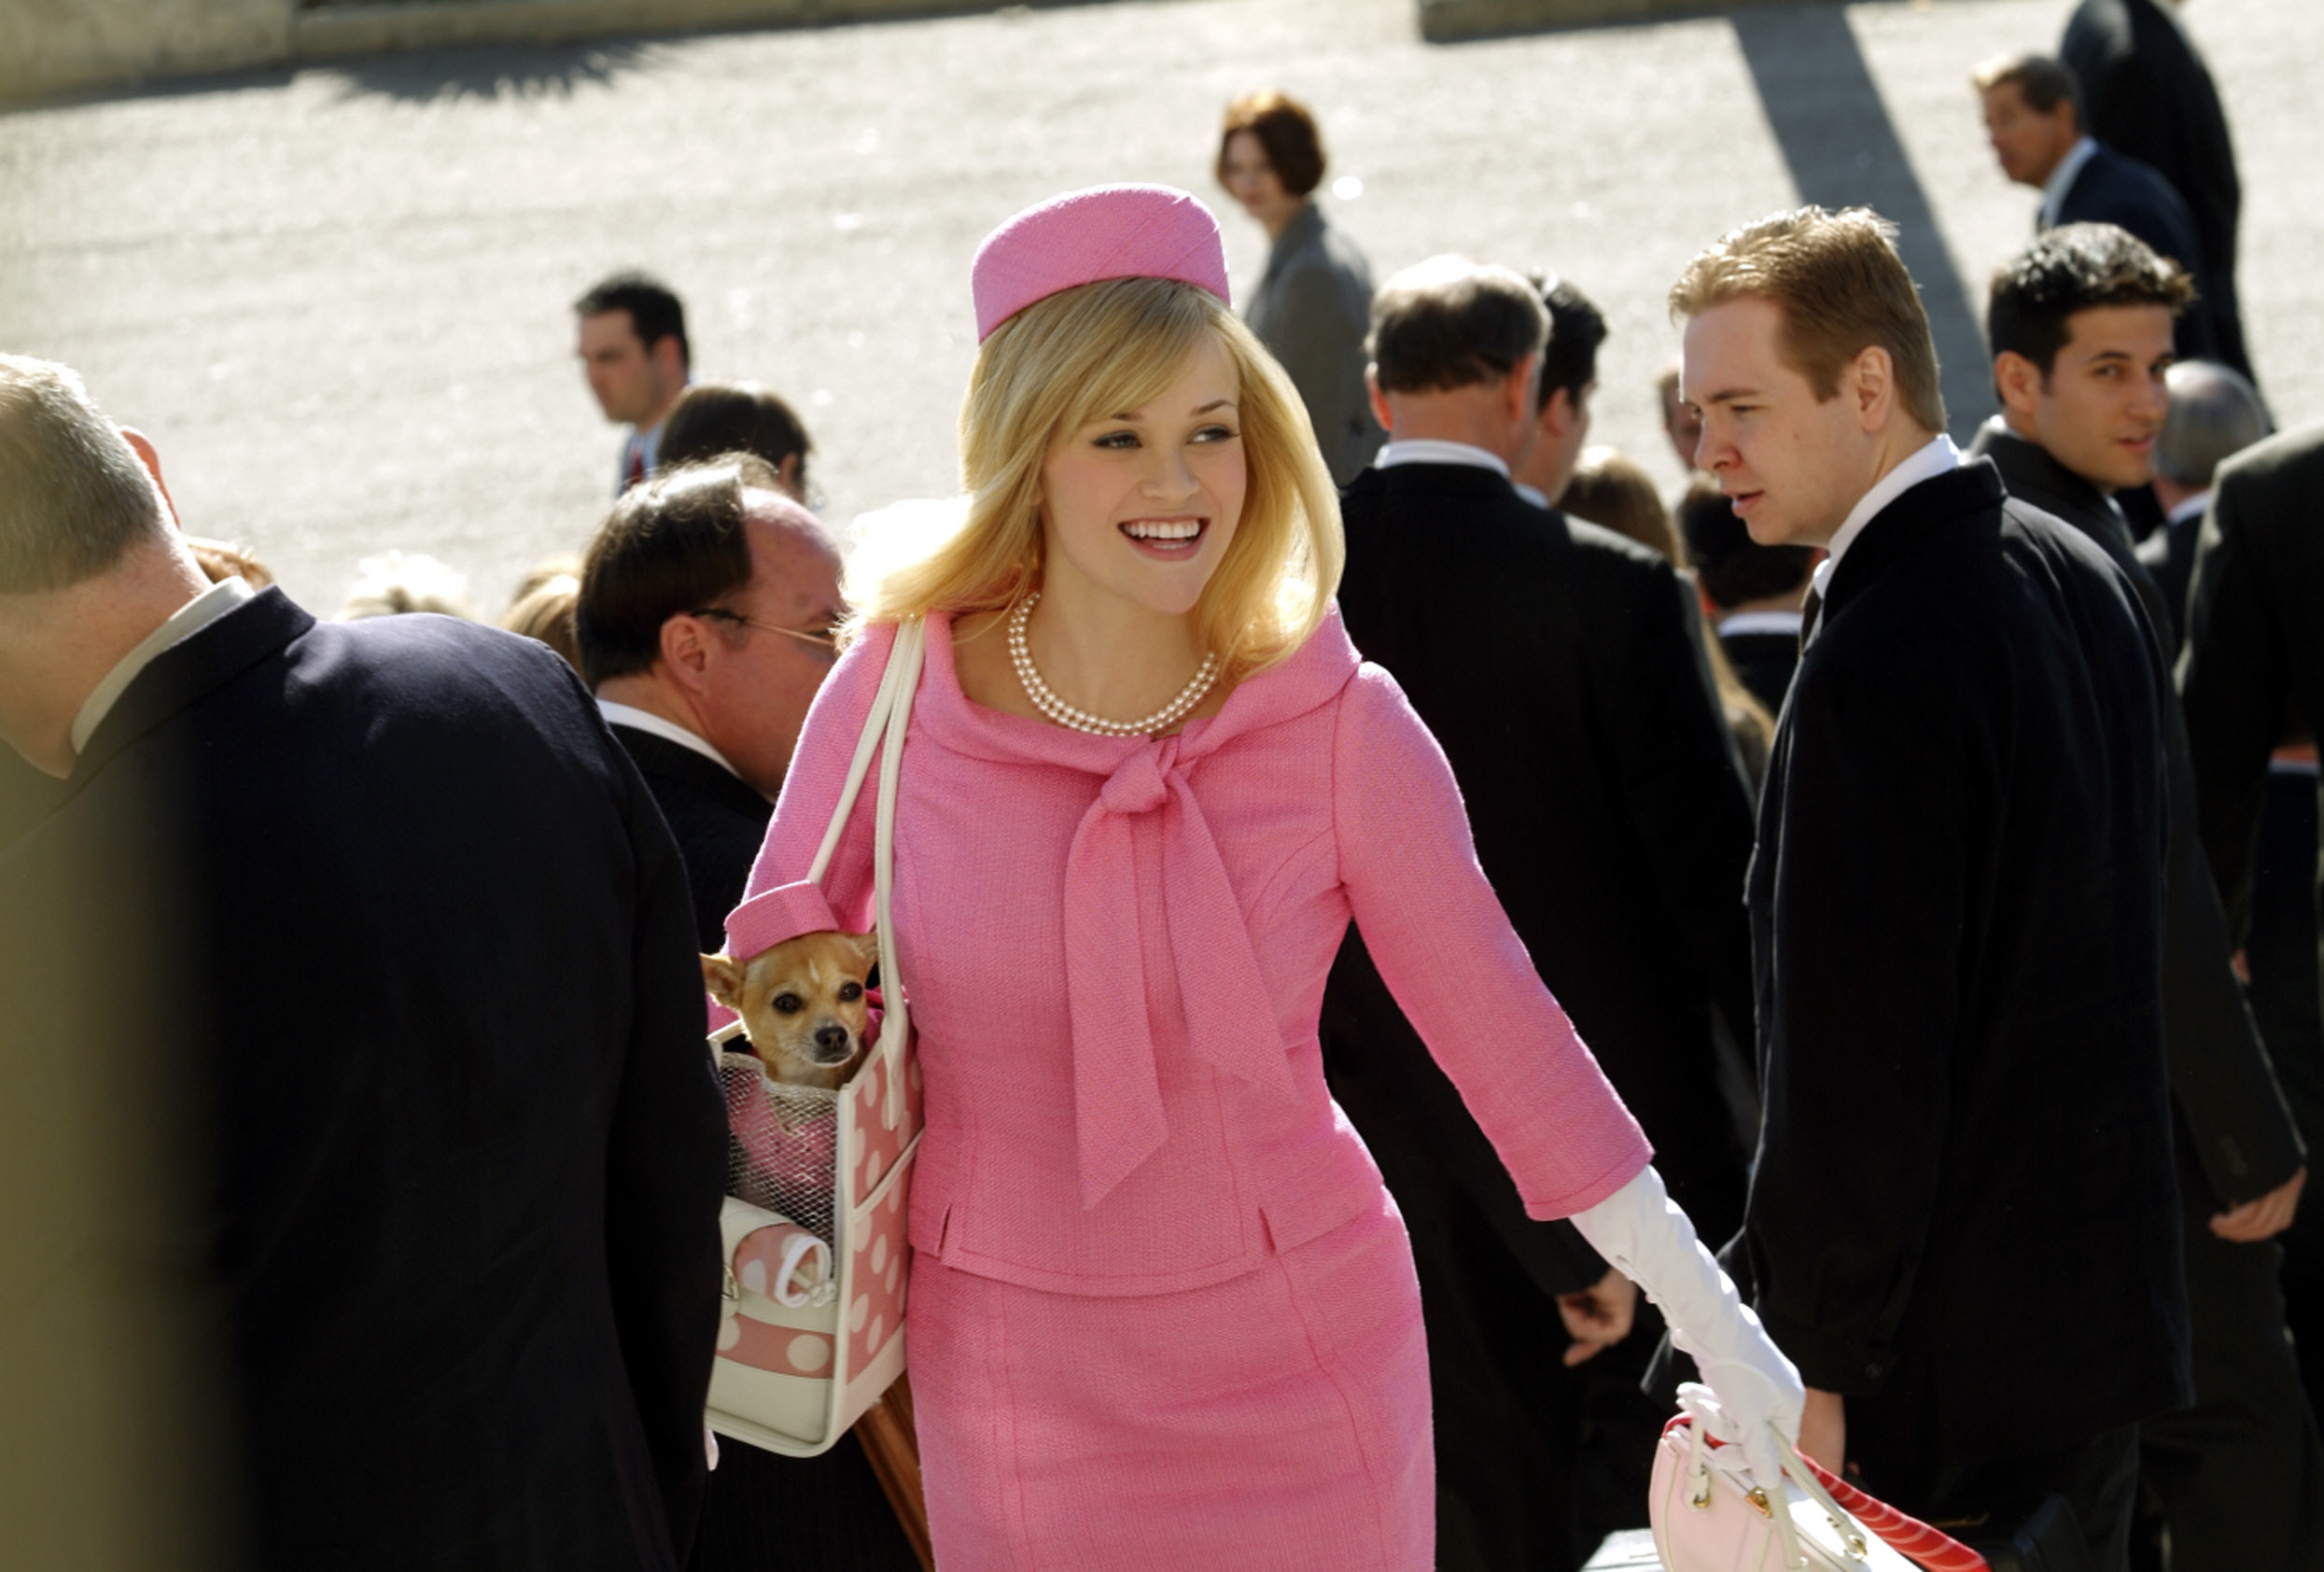 Elle wears a pink suit to court, and Bruce has a matching hat